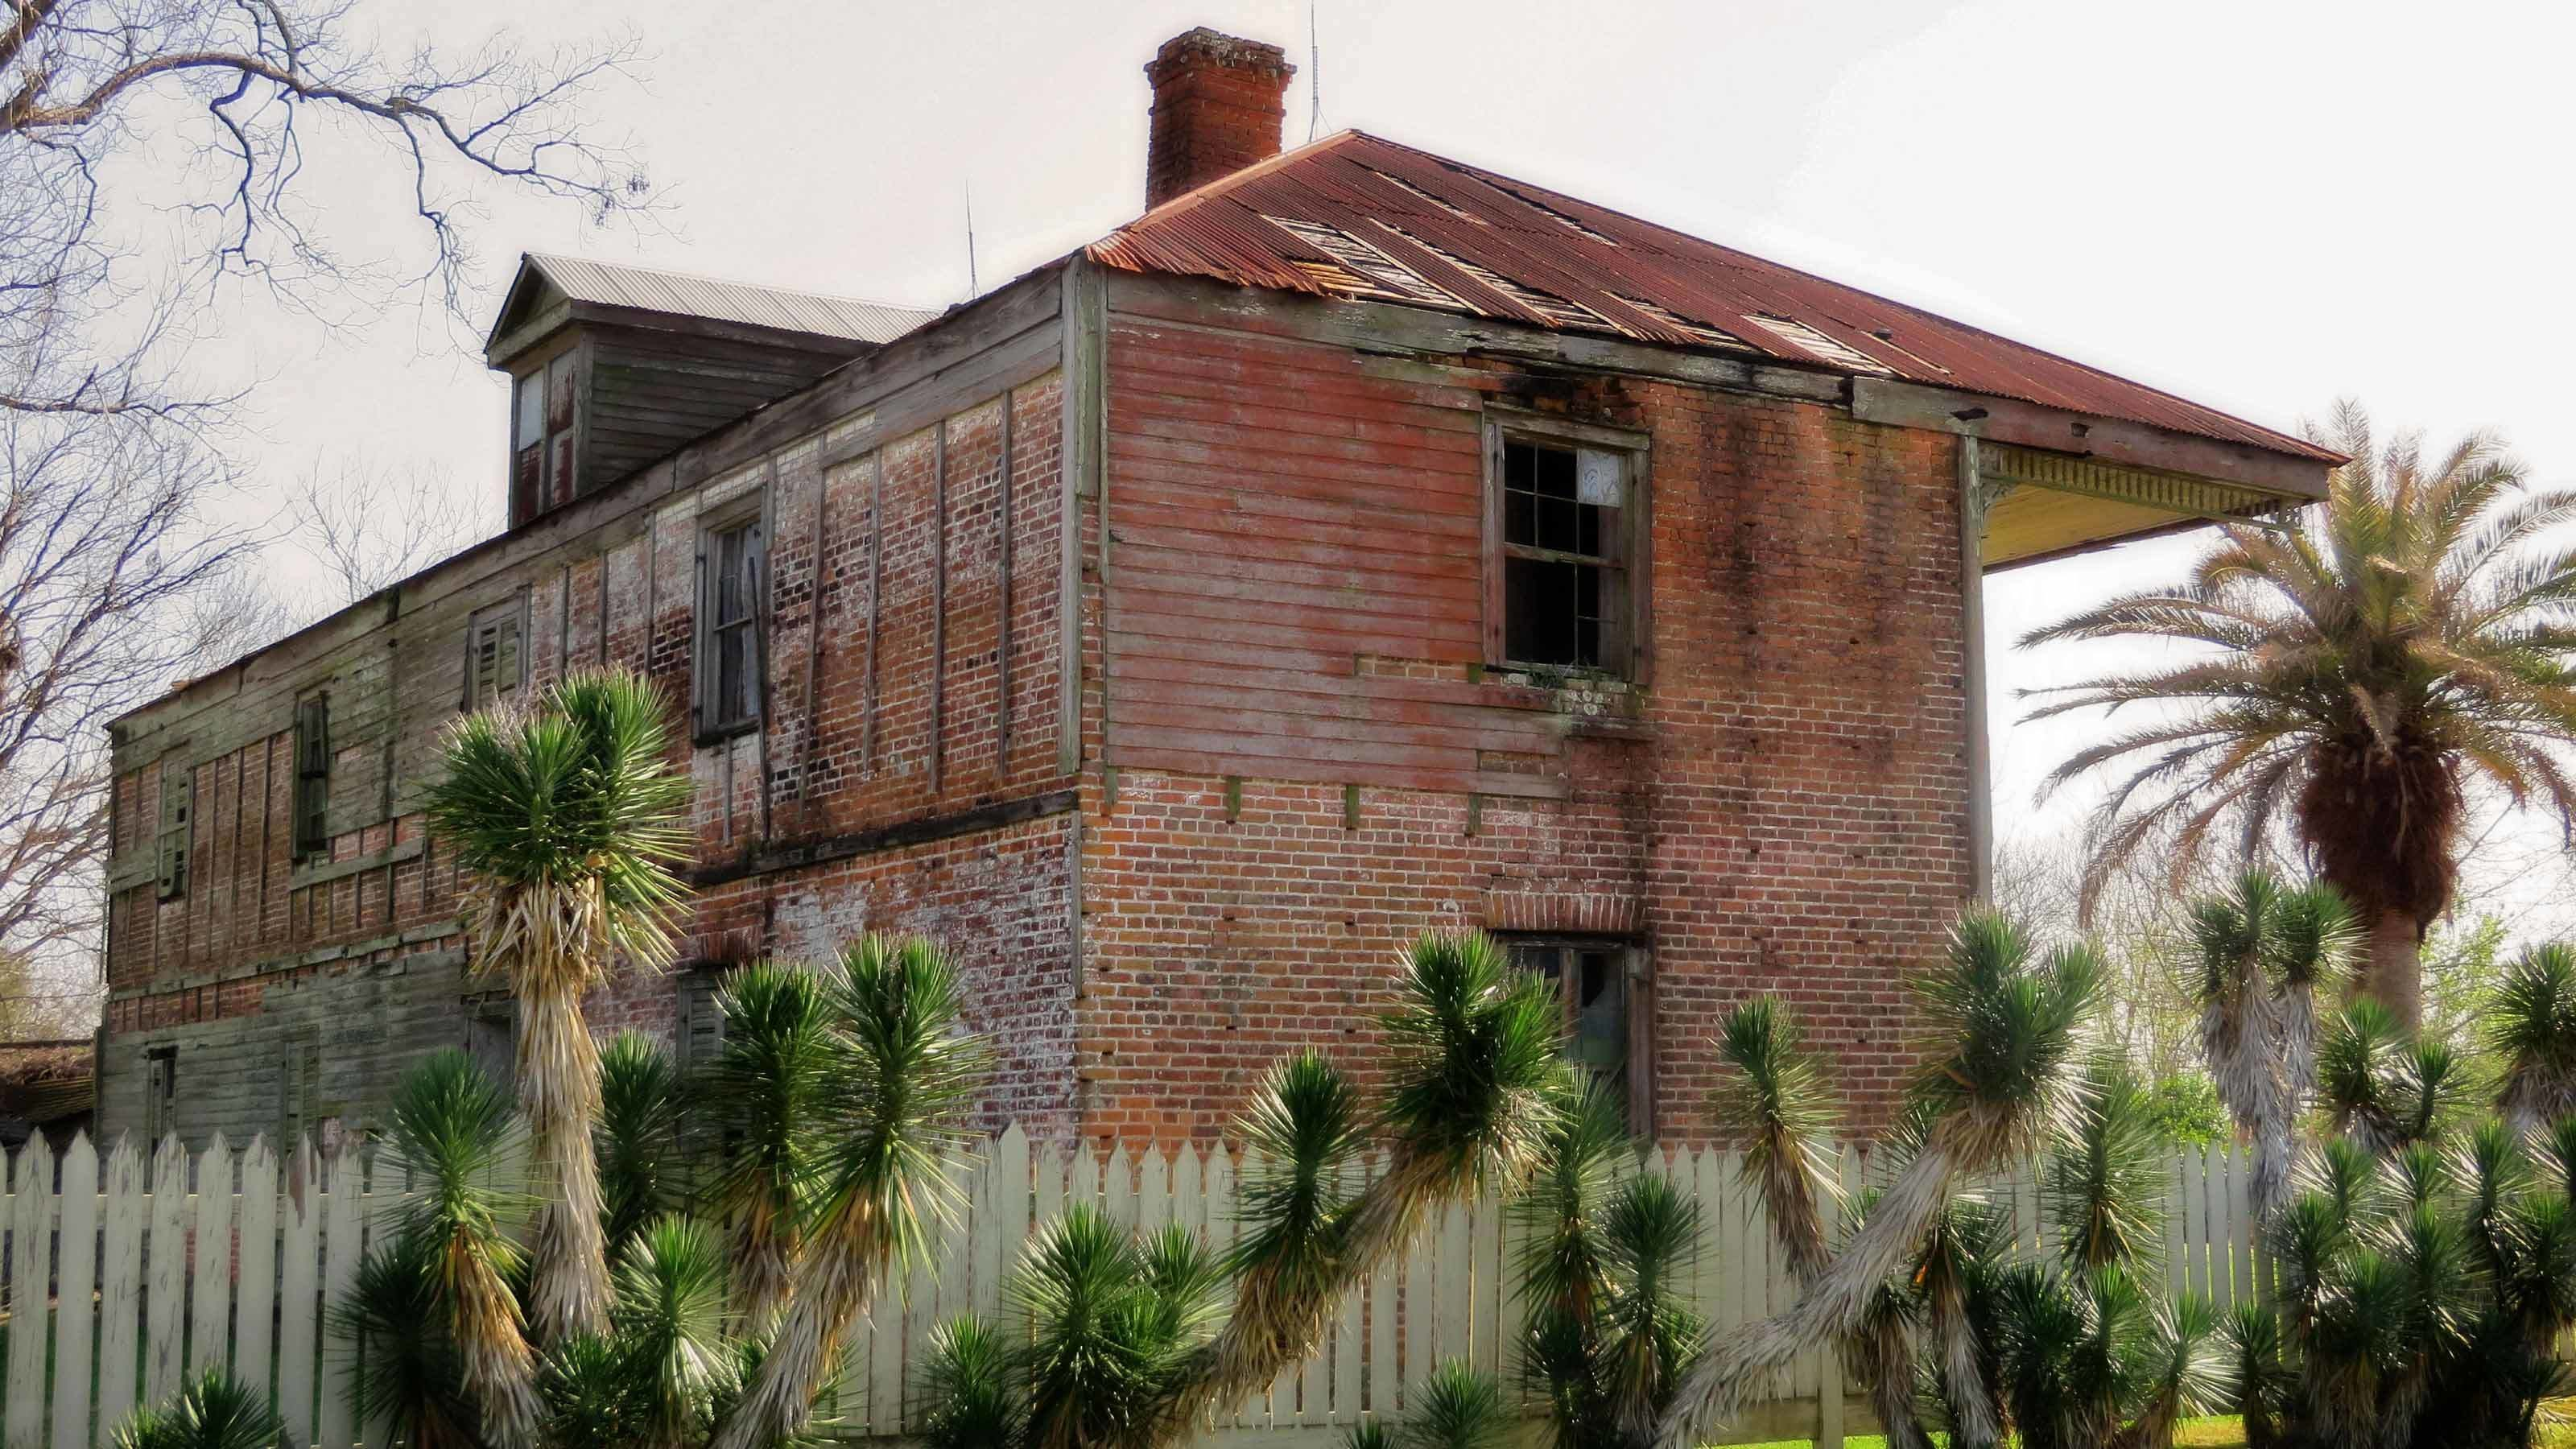 side view of old brick house with trees surrounding it